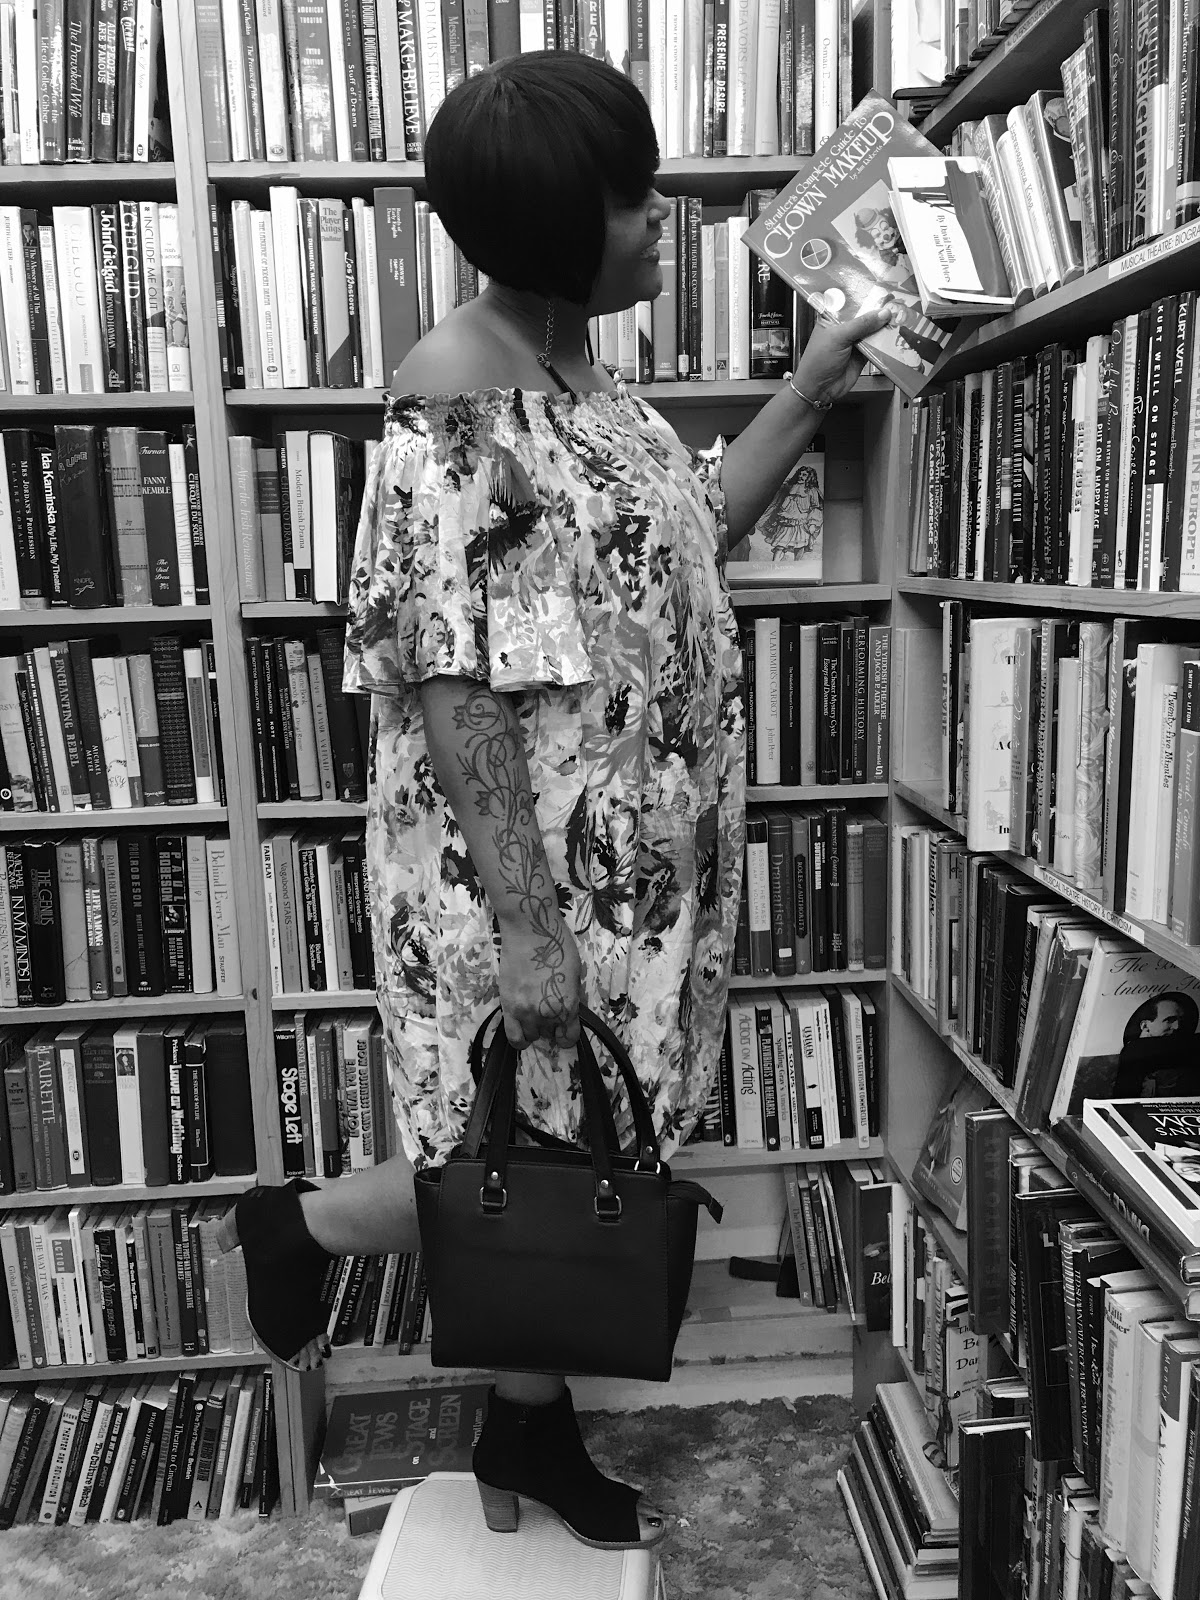 Image:Woman on step stool looking through books and other things at the store. Blog post on Bits and Babbles